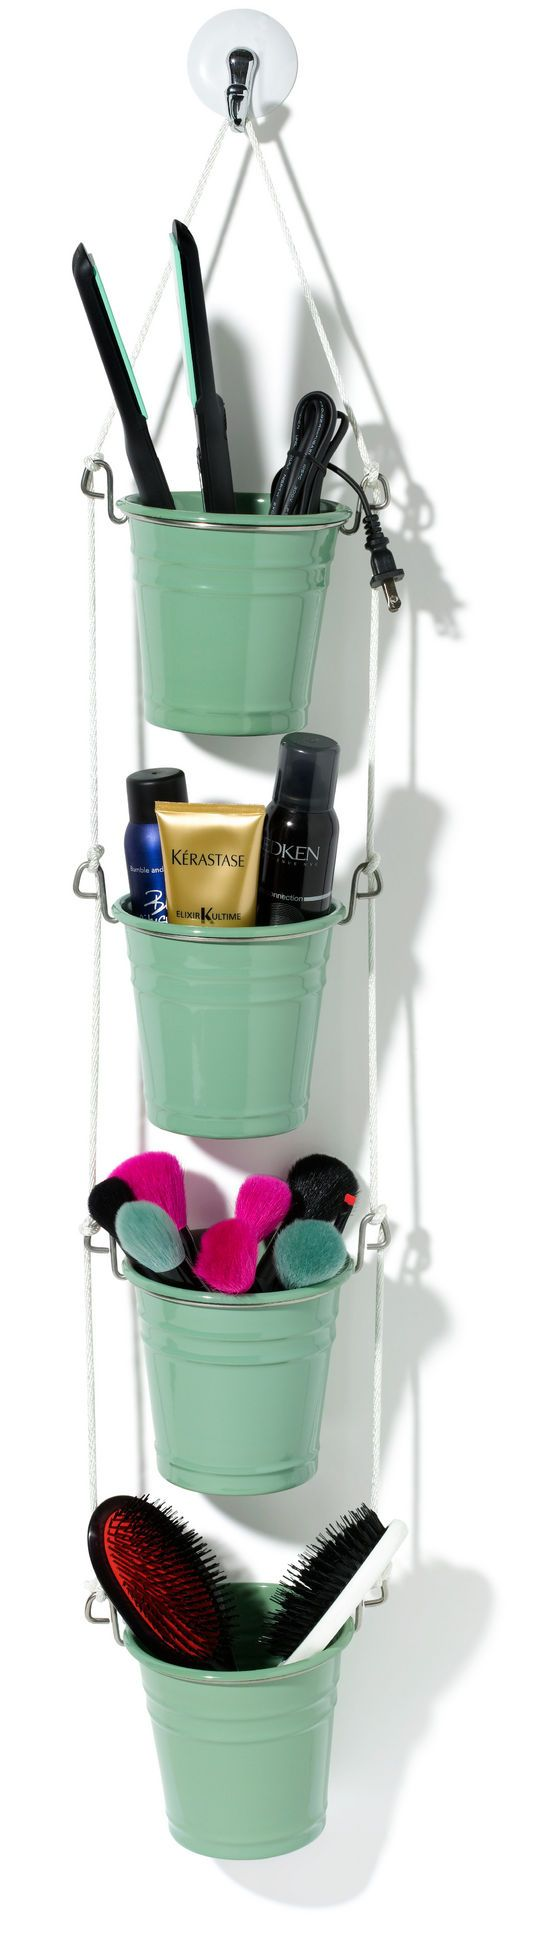 Using planters for organizing and hanging toiletries.